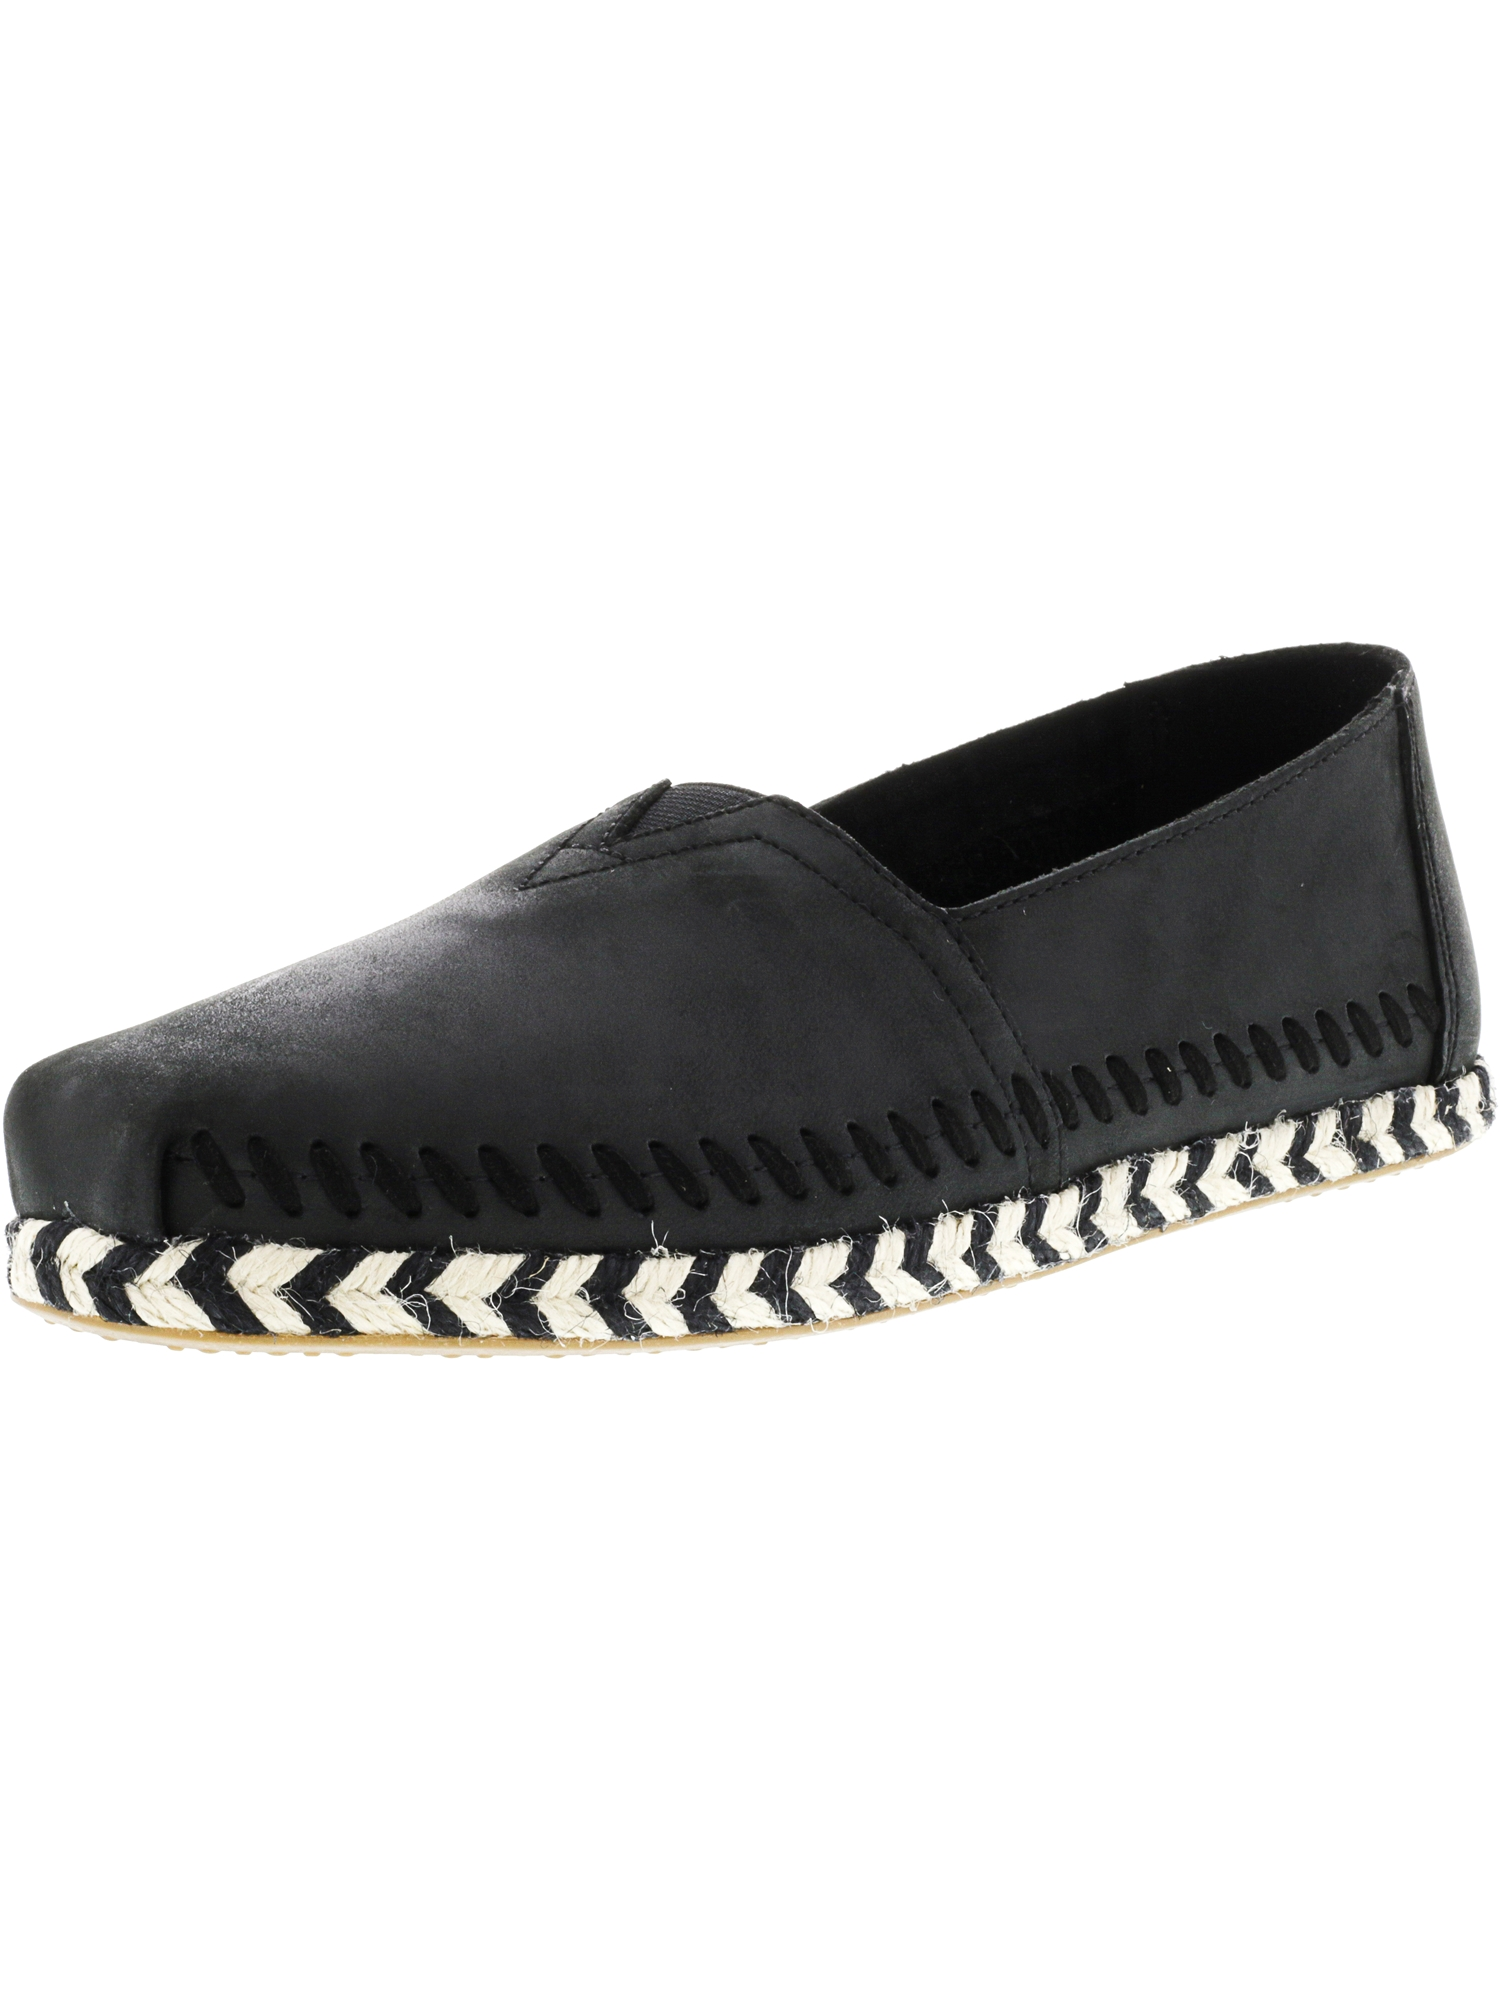 Toms Women's Classic Leather Rope Sole Black Ankle-High Slip-On Shoes - 6.5M